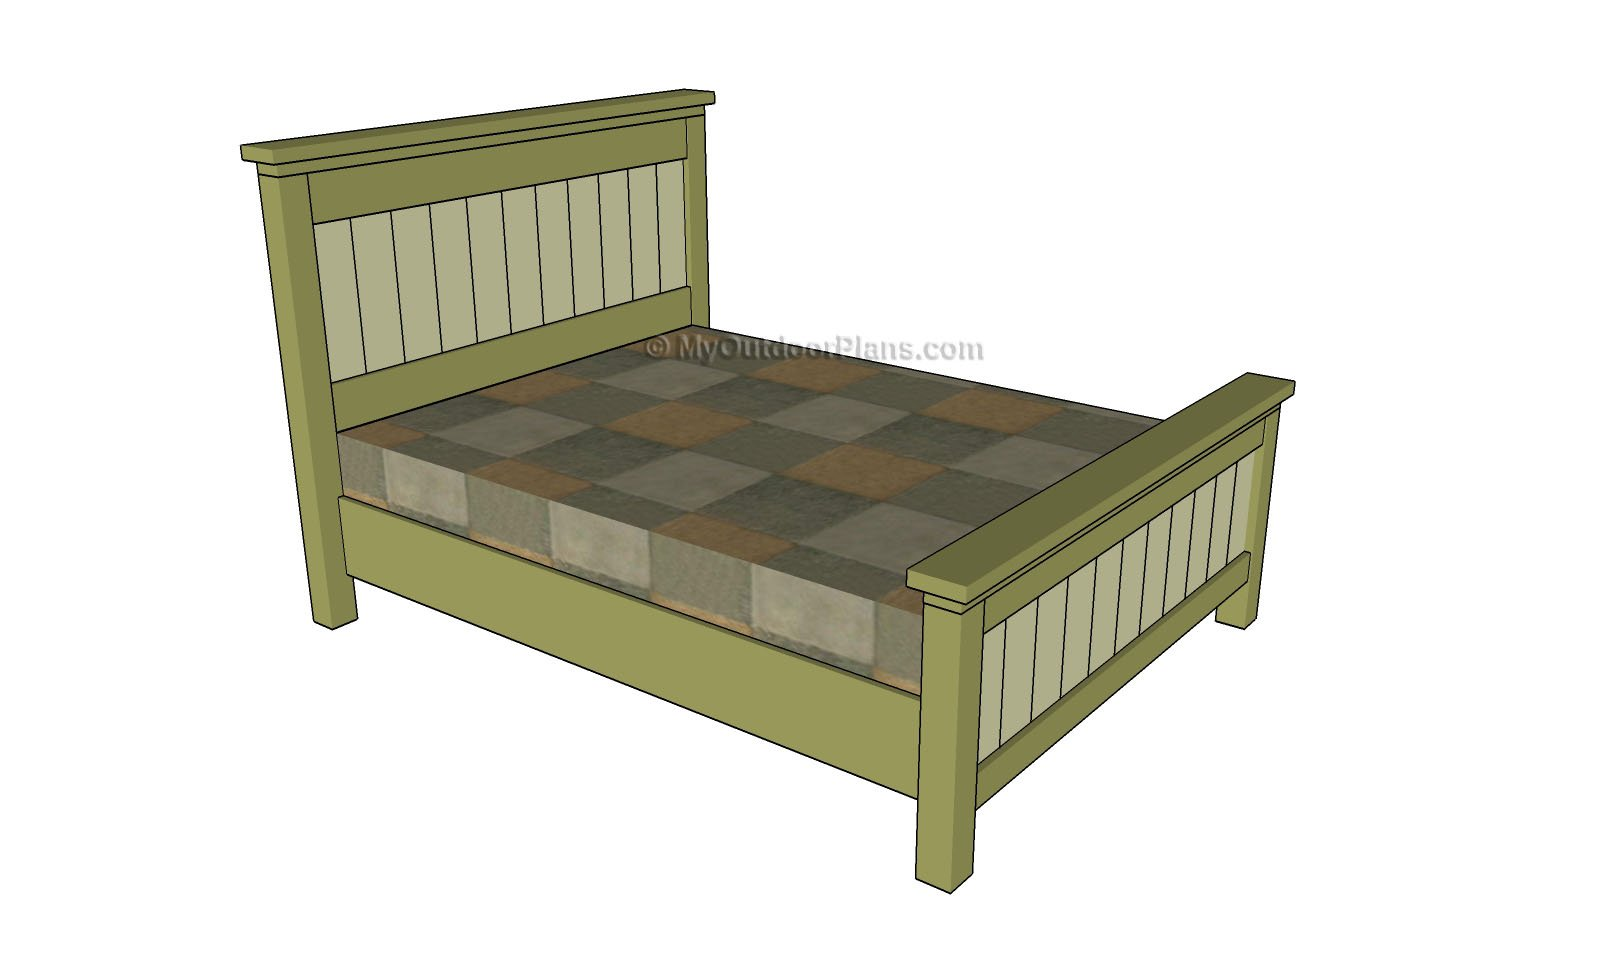 Queen Size Bed Plans Myoutdoorplans Free Woodworking Plans And Projects Diy Shed Wooden Playhouse Pergola Bbq